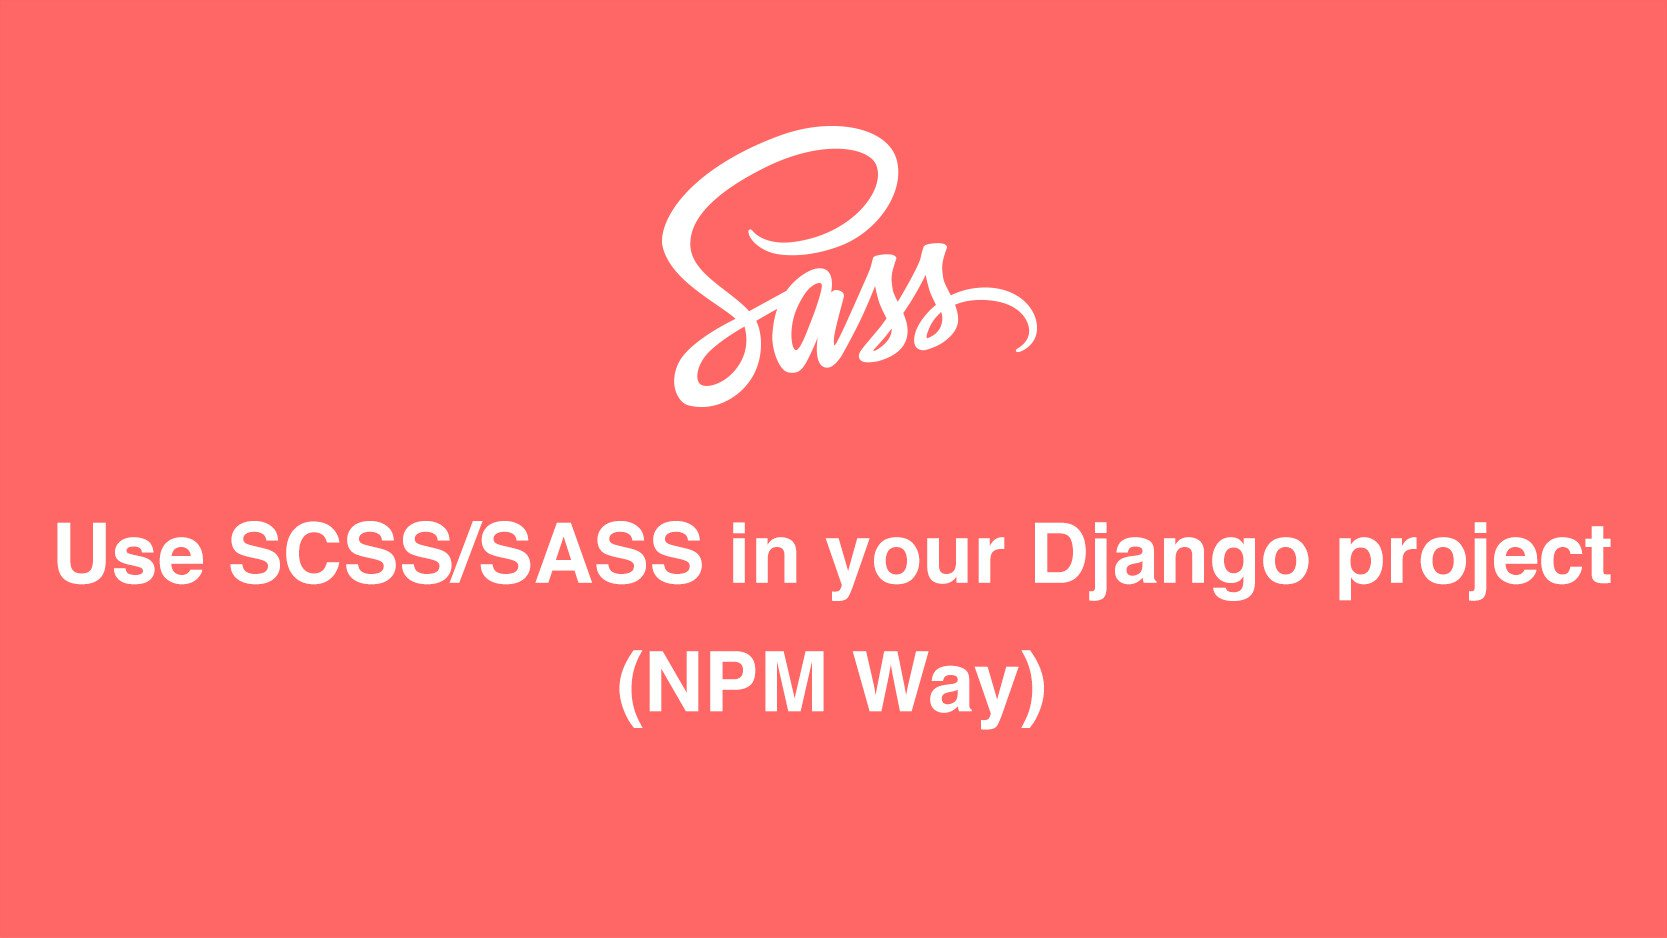 How to use SCSS/SASS in your Django project (NPM Way